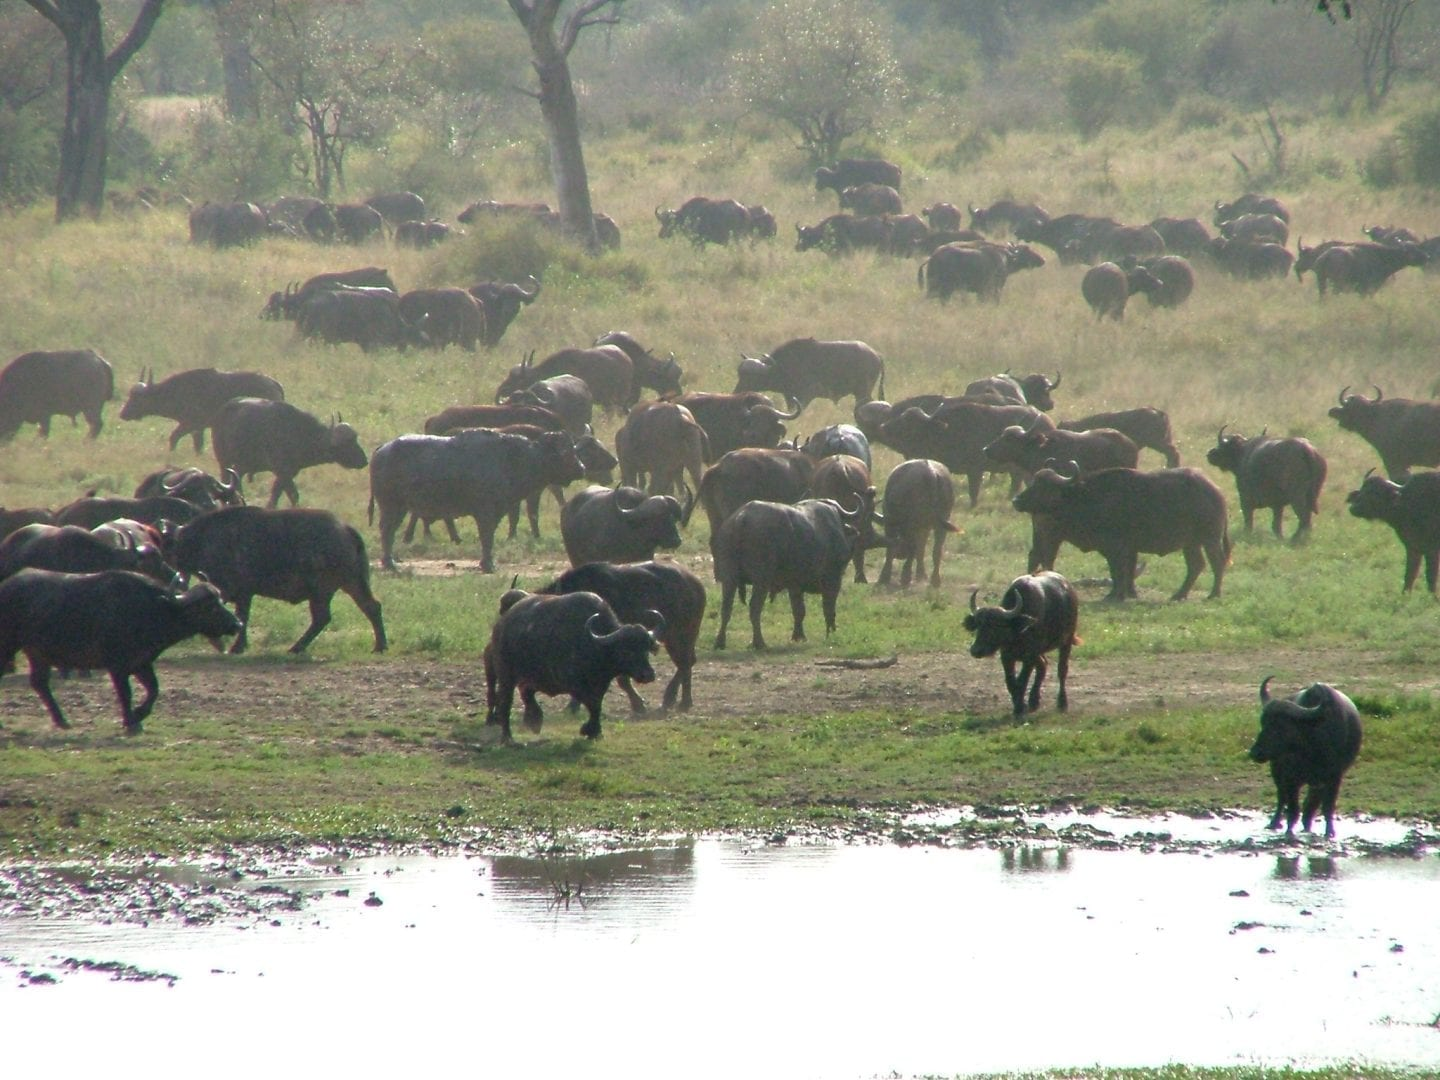 BUFFALOES-COMING-TO-DRINK-IN-THE-KRUGER-NATIONAL-PARK